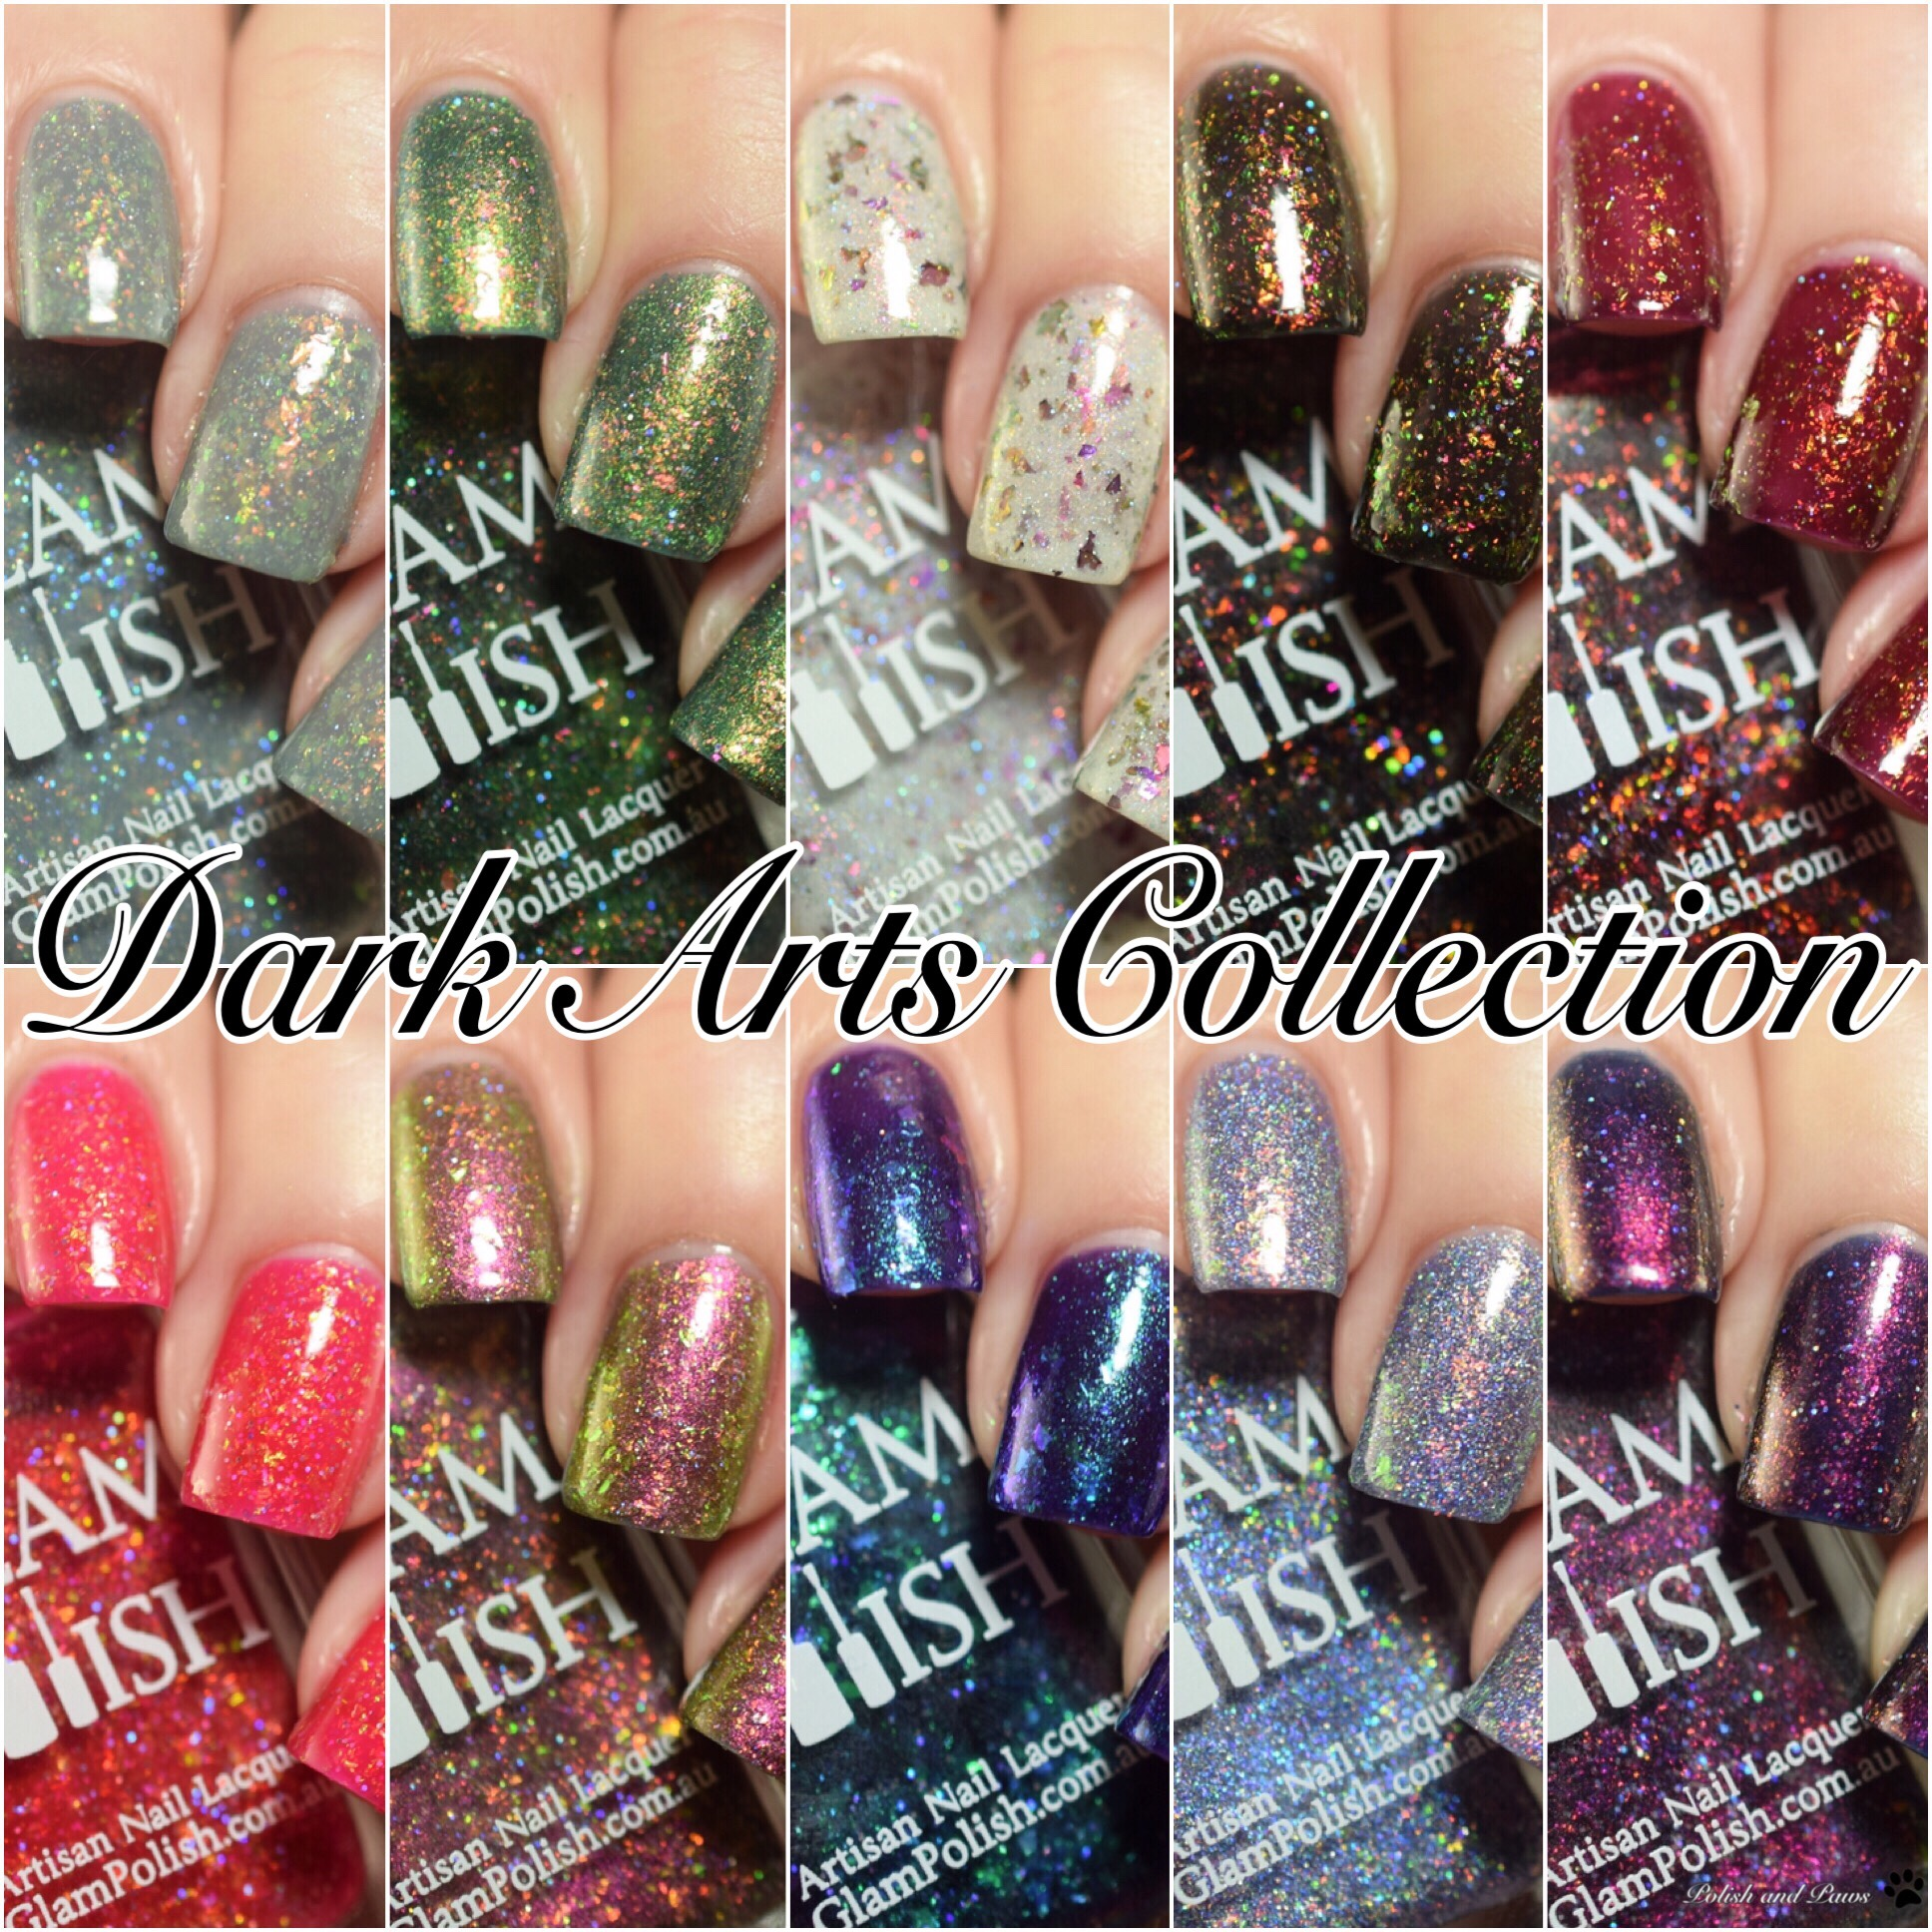 Glam Polish Dark Arts Collection LE